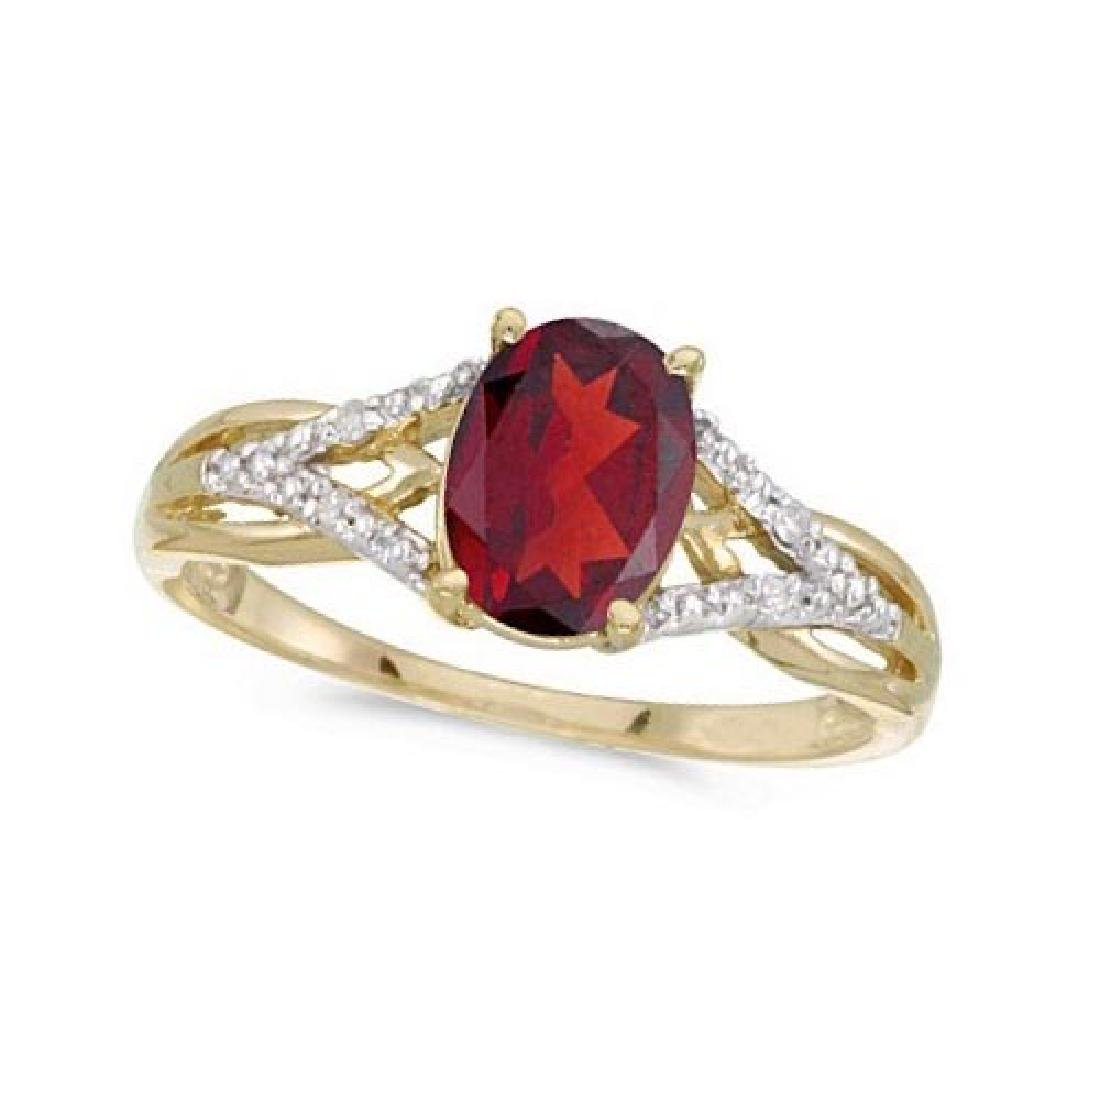 Oval Ruby and Diamond Cocktail Ring in 14K Yellow Gold